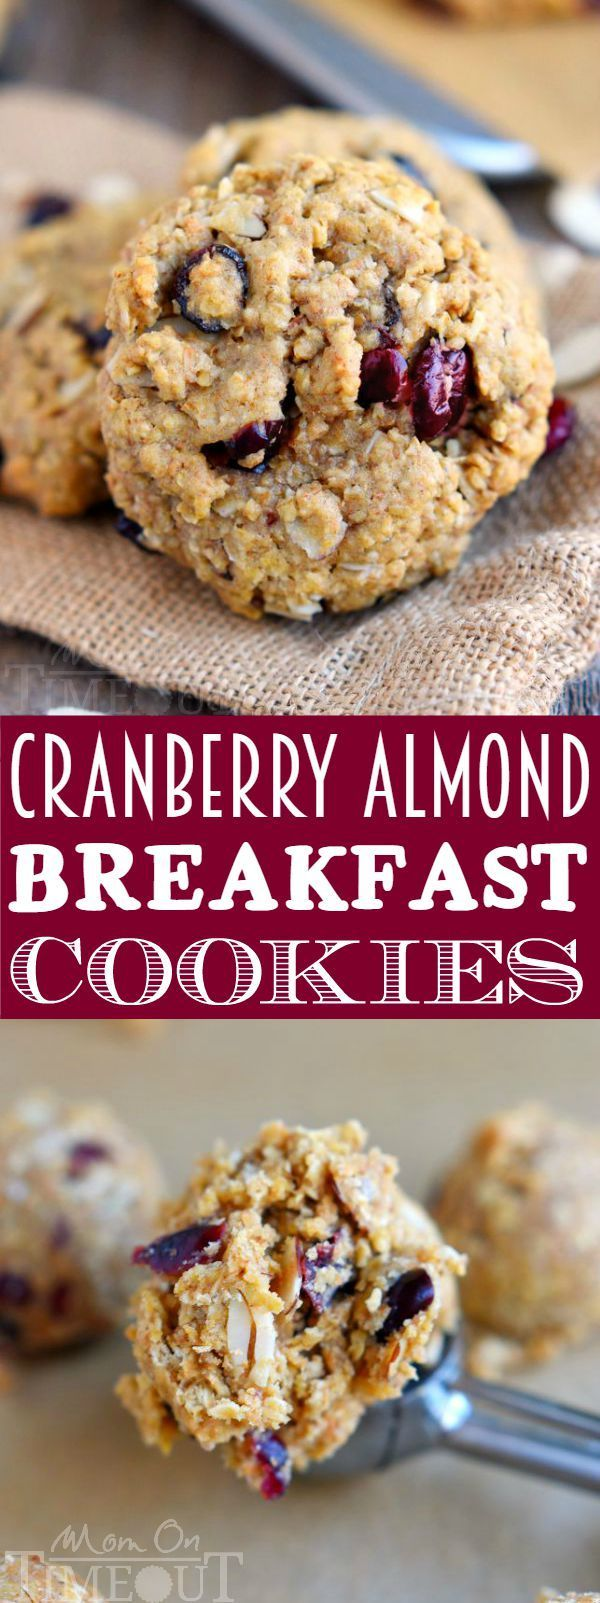 These Cranberry Almond Breakfast Cookies are the perfect grab-and-go breakfast for busy mornings! Extra-healthy and totally delicious, it's the perfect excuse to eat dessert for breakfast!